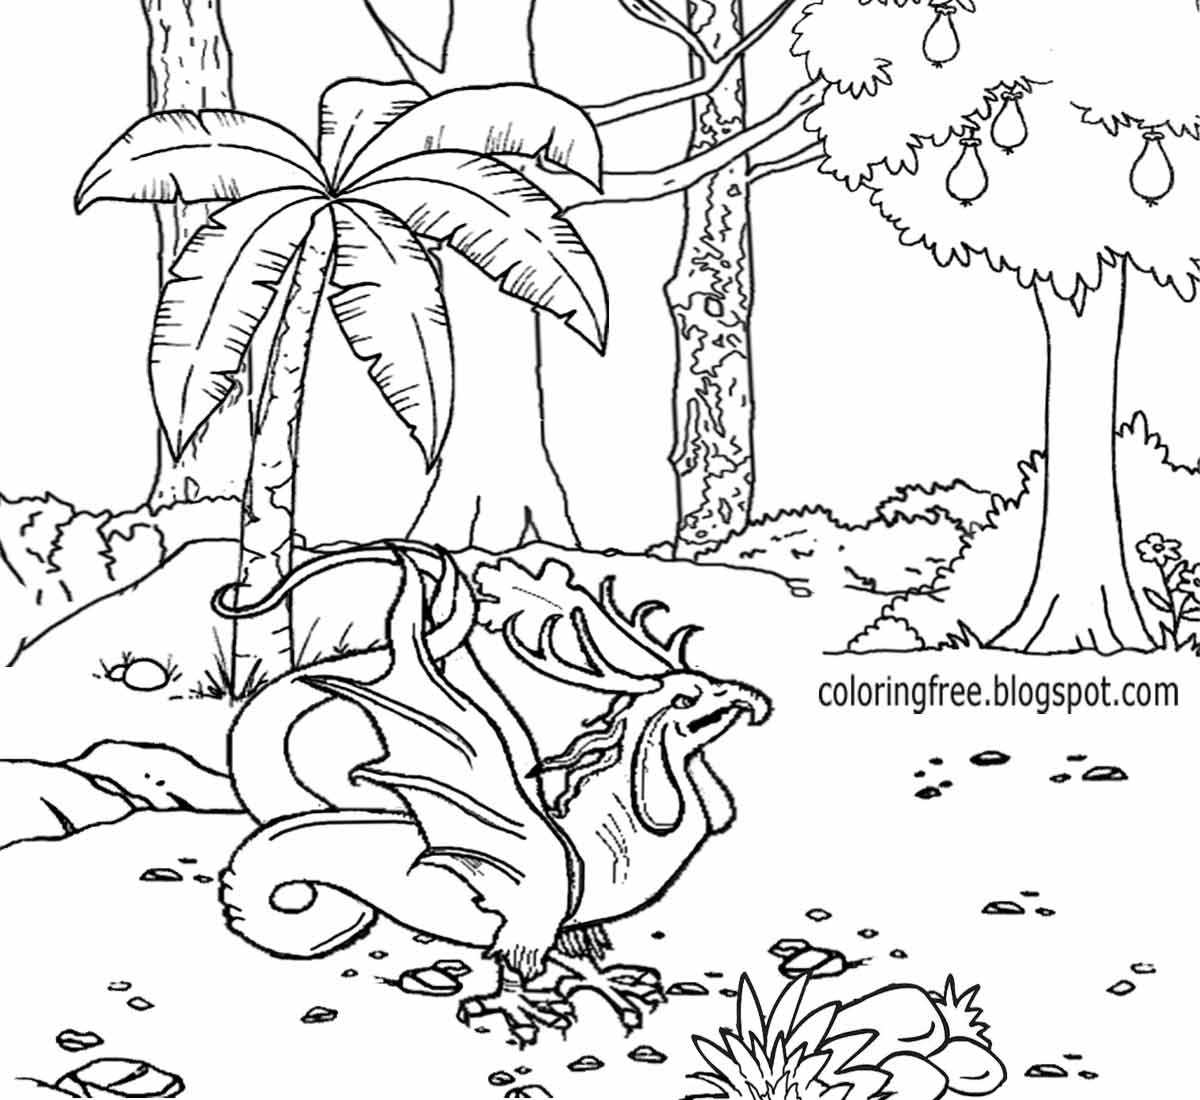 1200x1100 Free Coloring Pages Printable Pictures To Color Kids Drawing Ideas